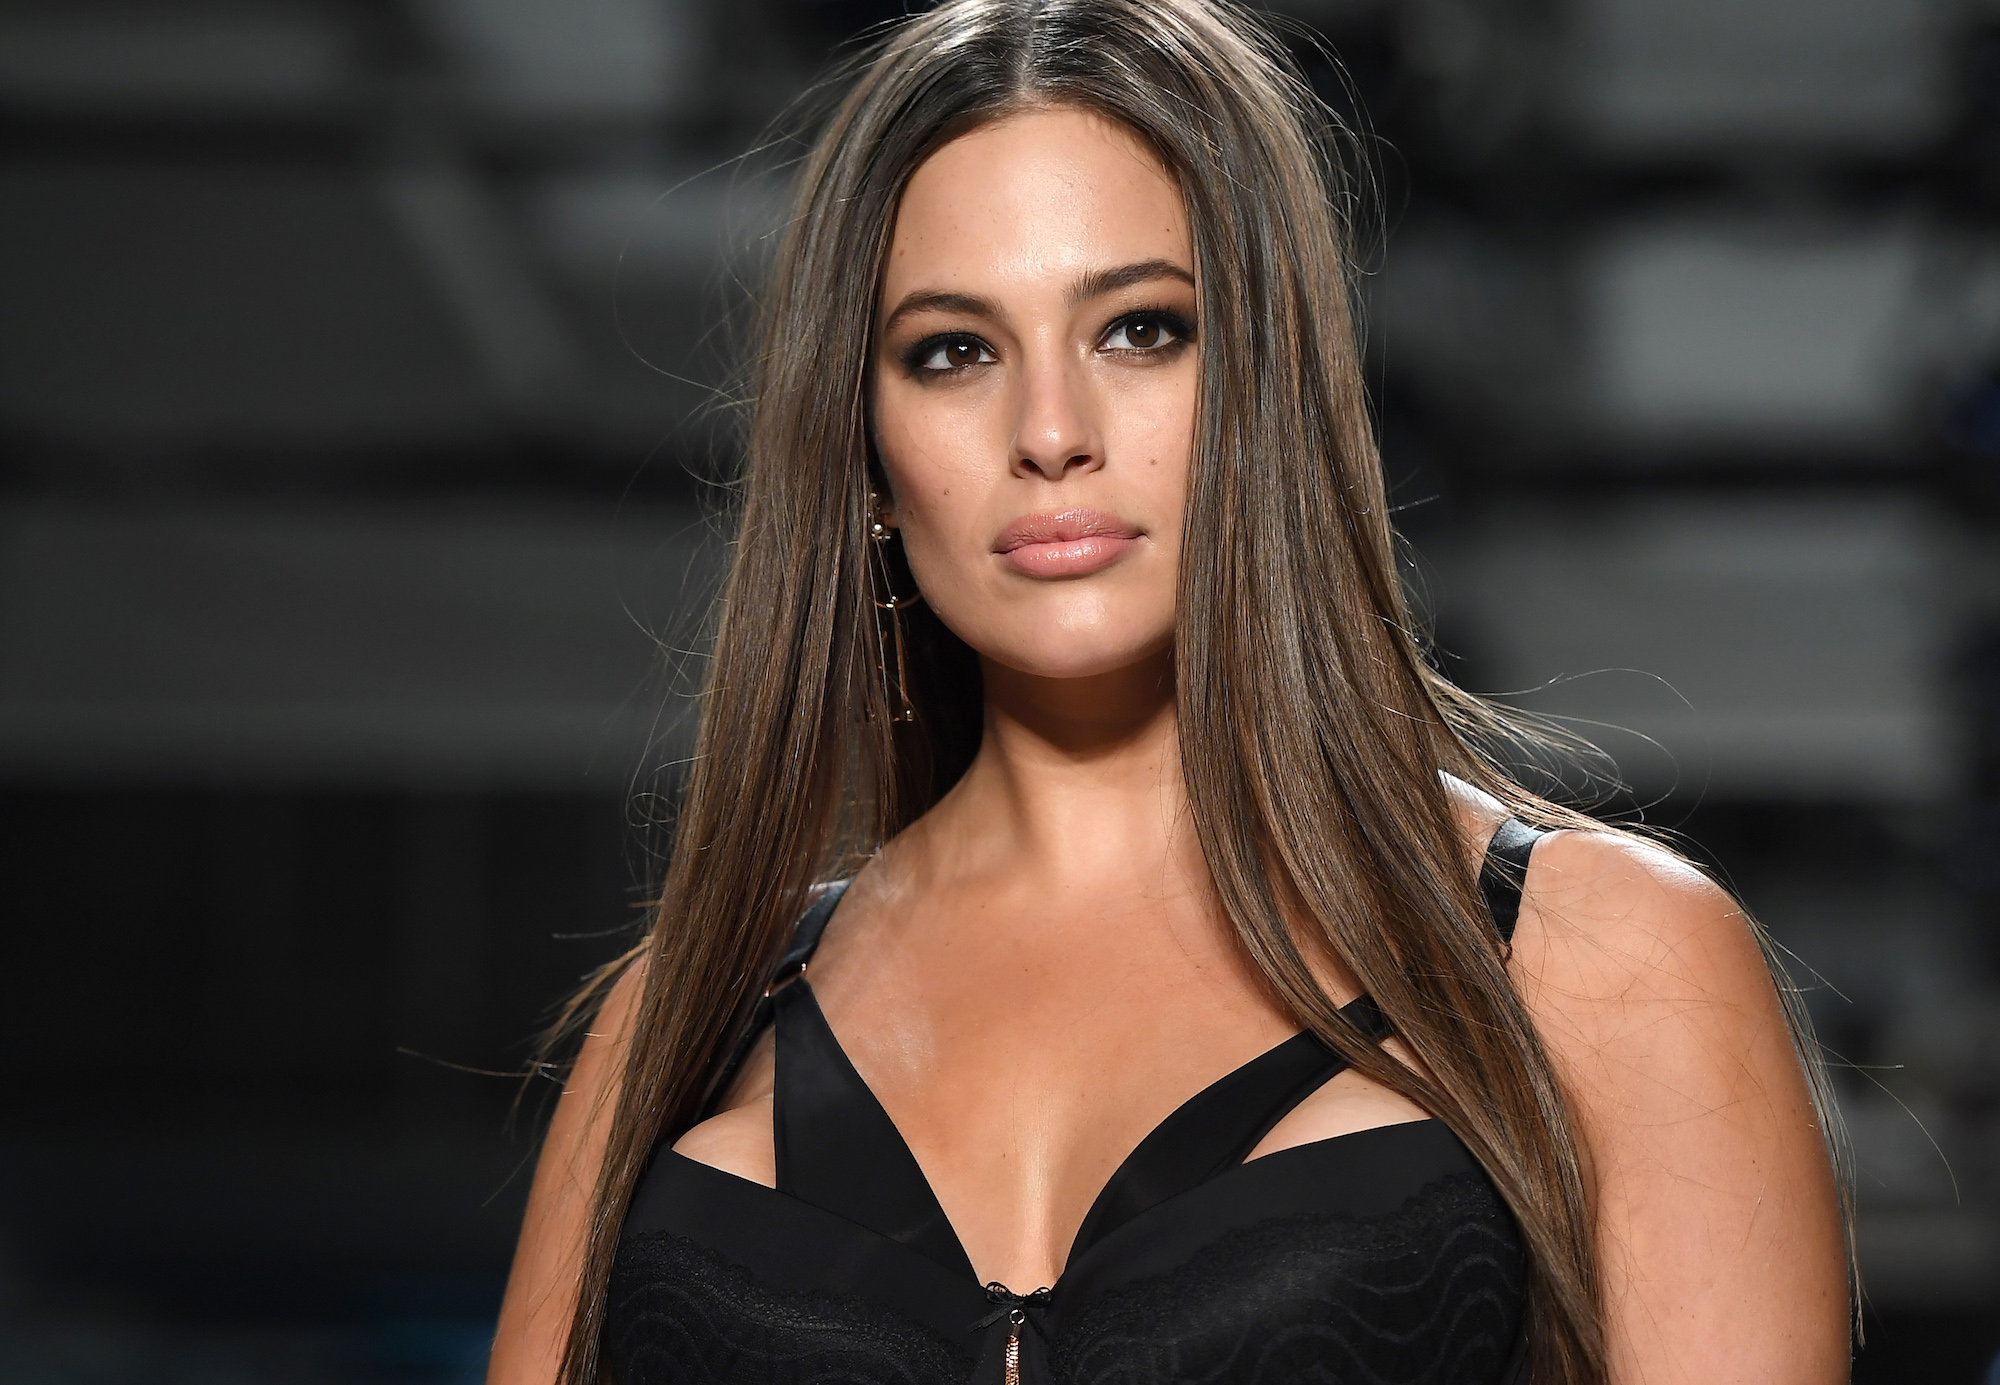 Ashley Graham nude (67 photo), Topless, Fappening, Instagram, legs 2019